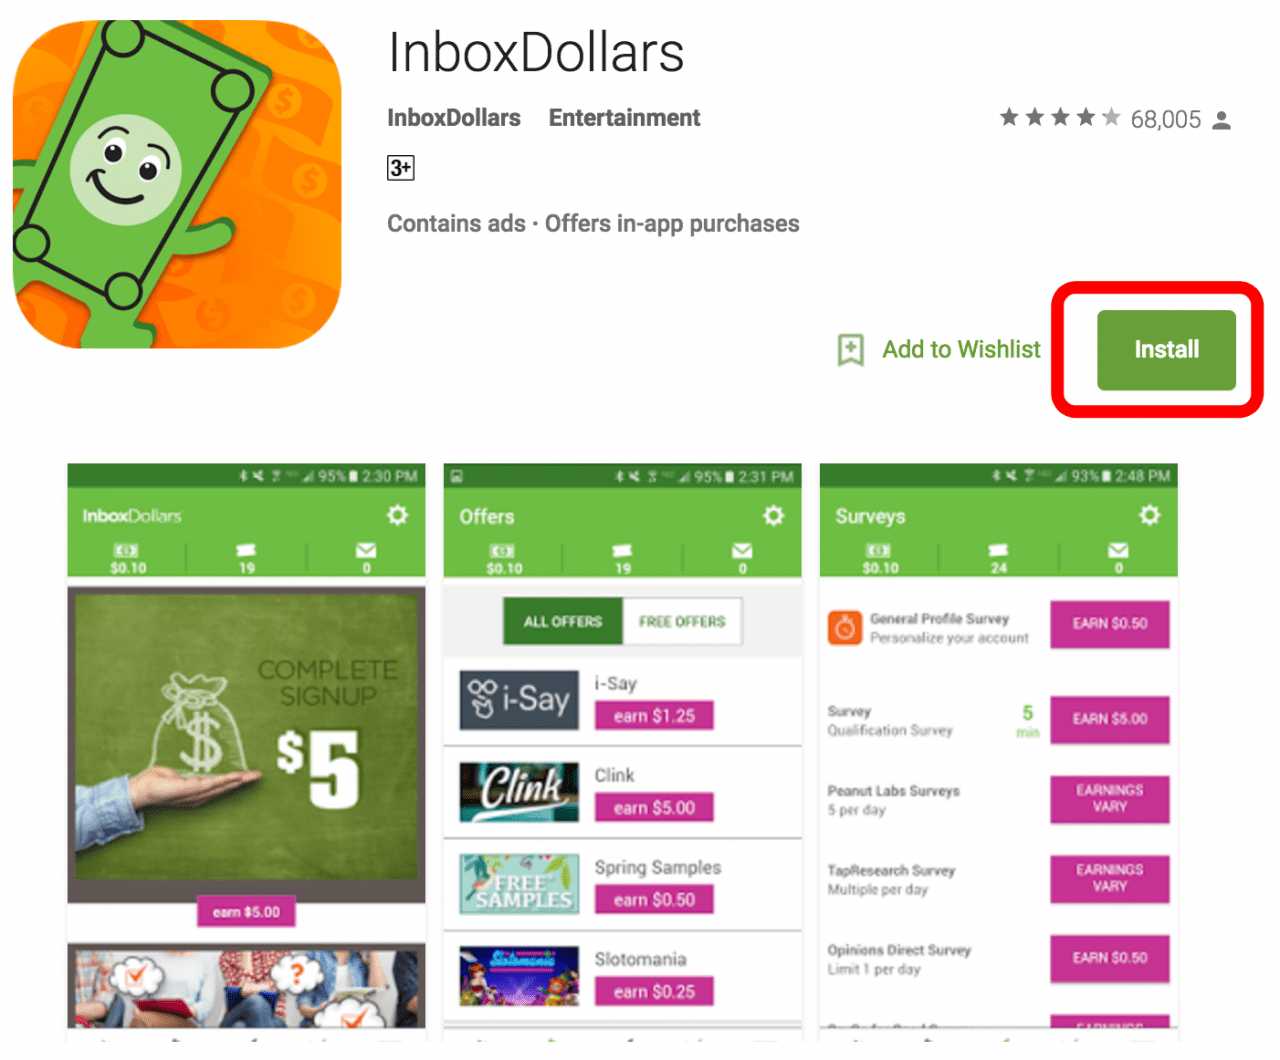 inbox-dollar-android-app-earn-extra-income-by-answering-surveys